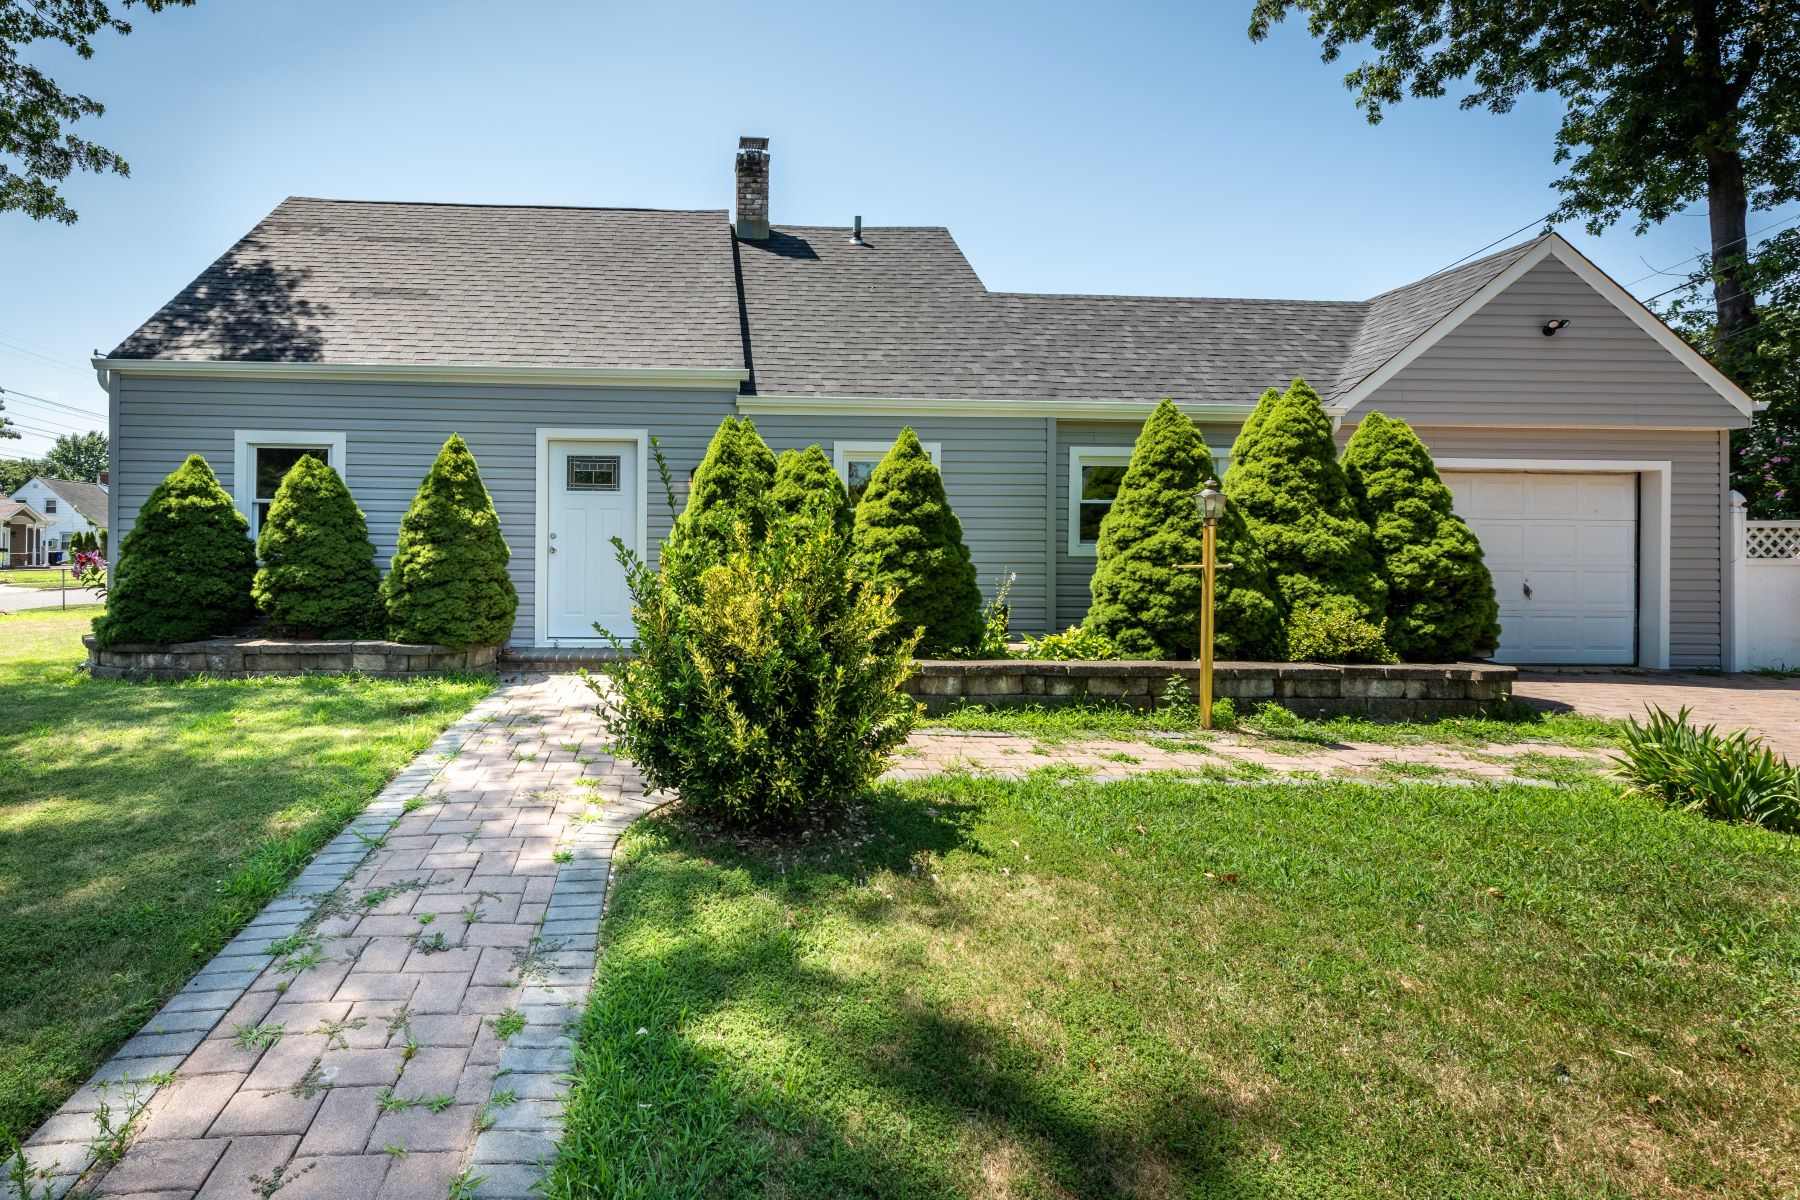 Single Family Homes for Active at Levittown 2 Heather Ln Levittown, New York 11756 United States